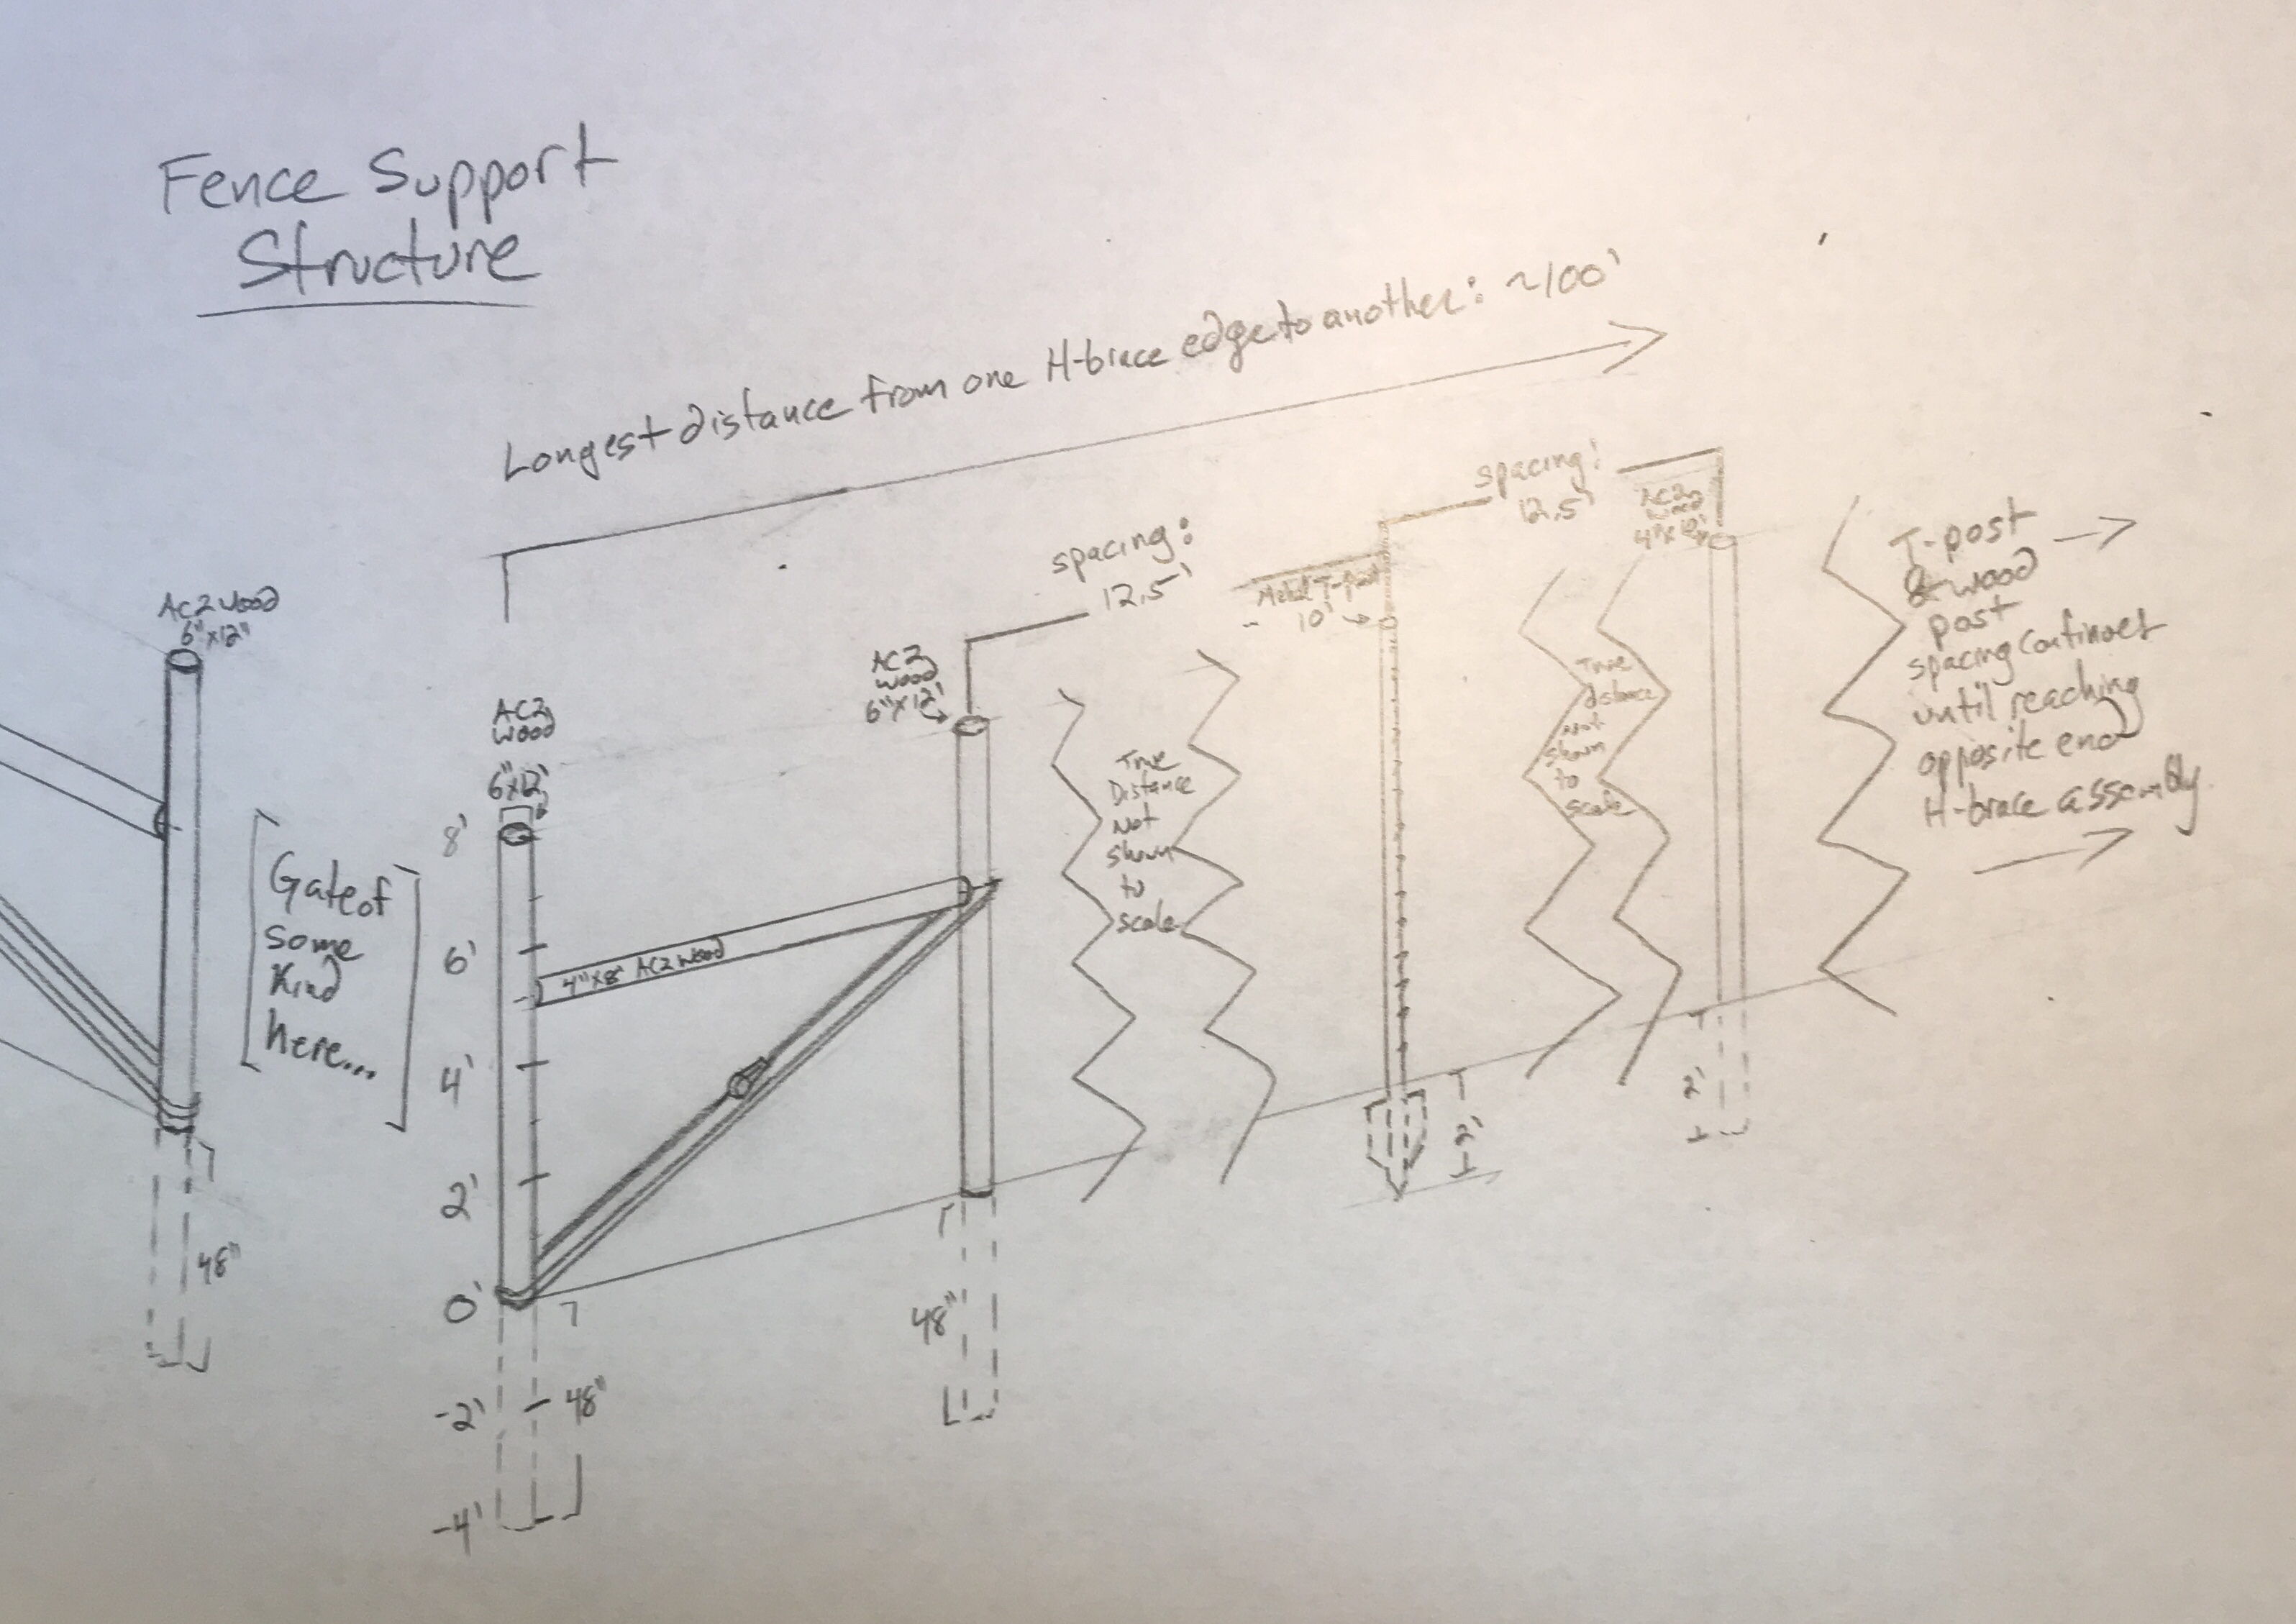 Attractive High Tensile Fence Illustration Electrical Diagram